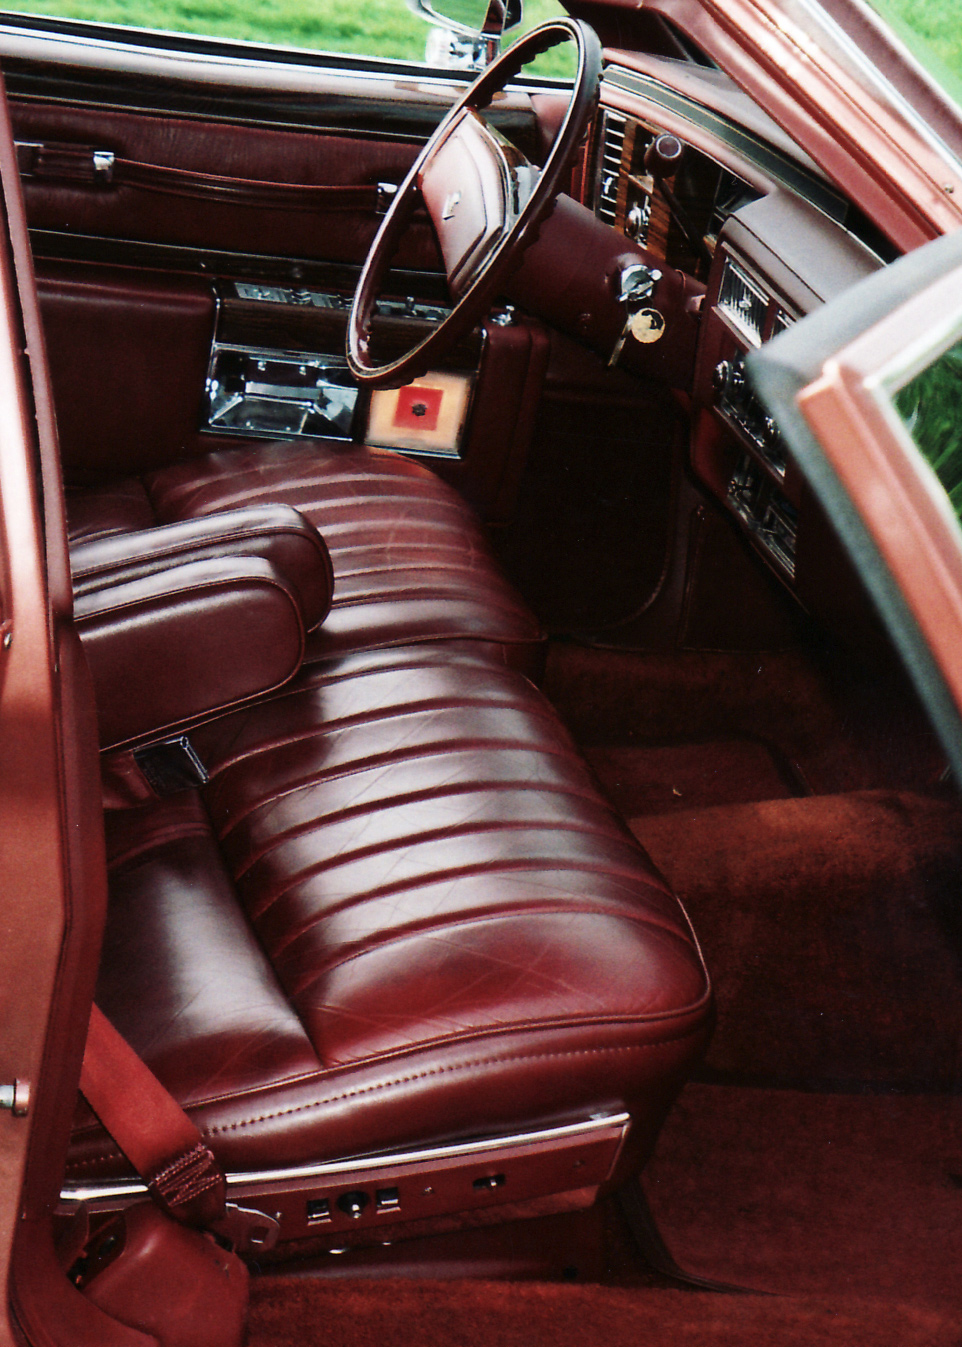 1978 CADILLAC DE VILLE 4 DOOR SEDAN - Interior - 61033